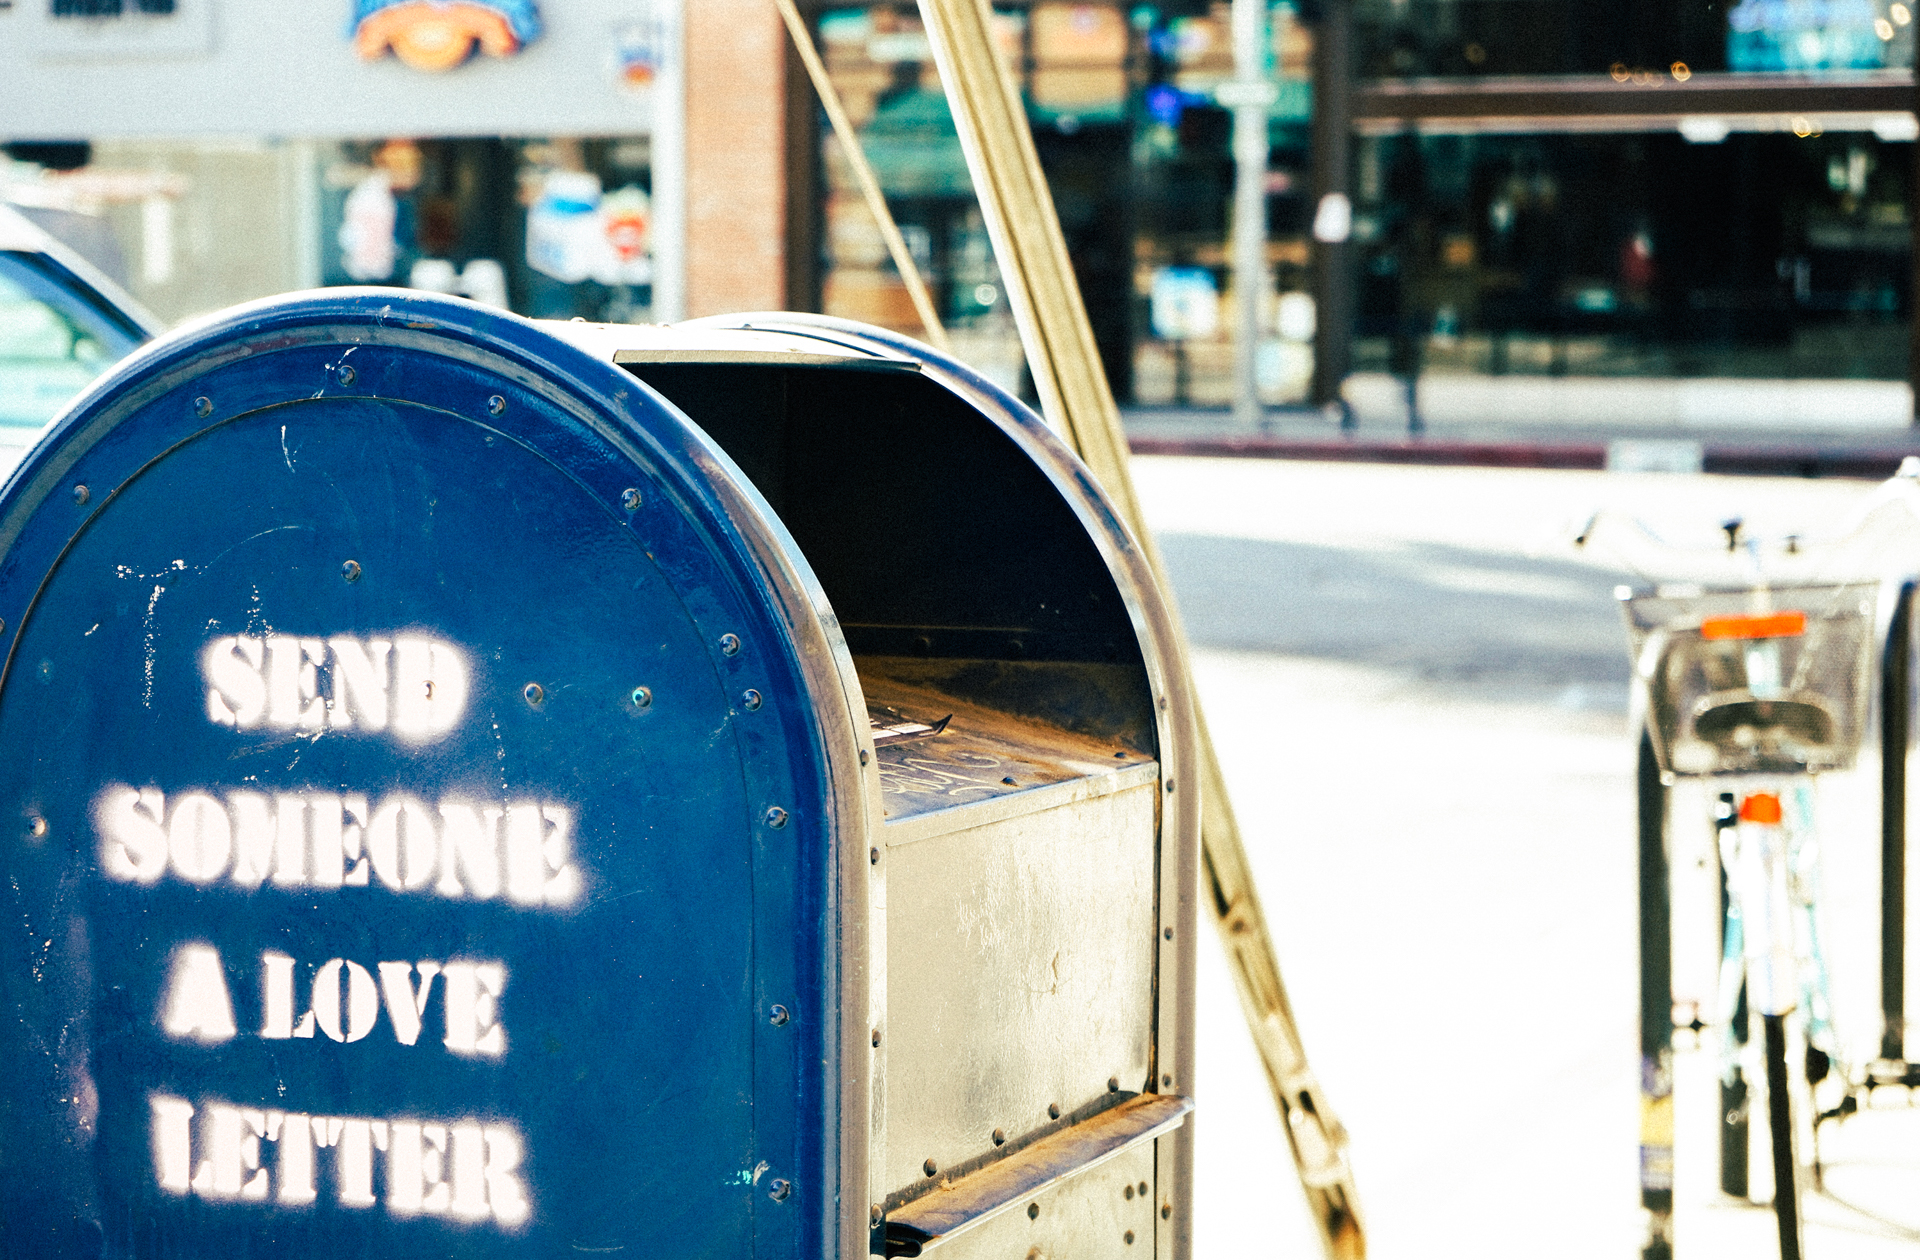 pexels.com - by jaymantri - letter-mail-mailbox-postbox - 4943